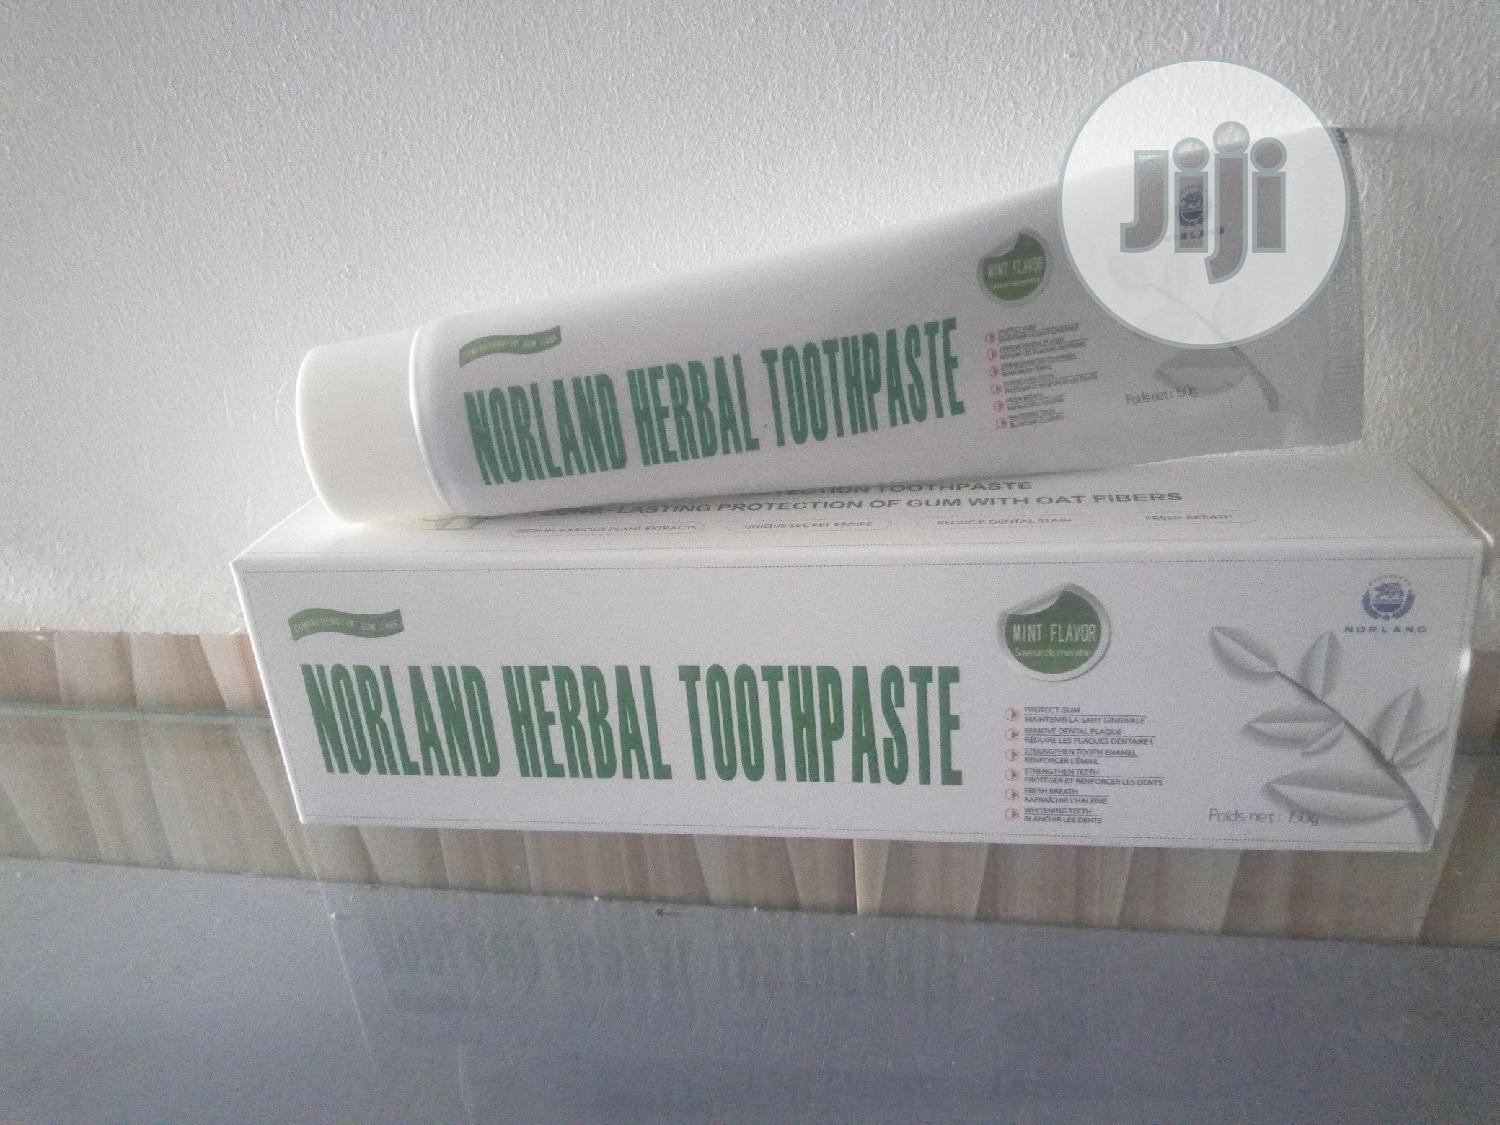 Norland Herbal Toothpaste For All Teeth Problems Mouth Ulcer